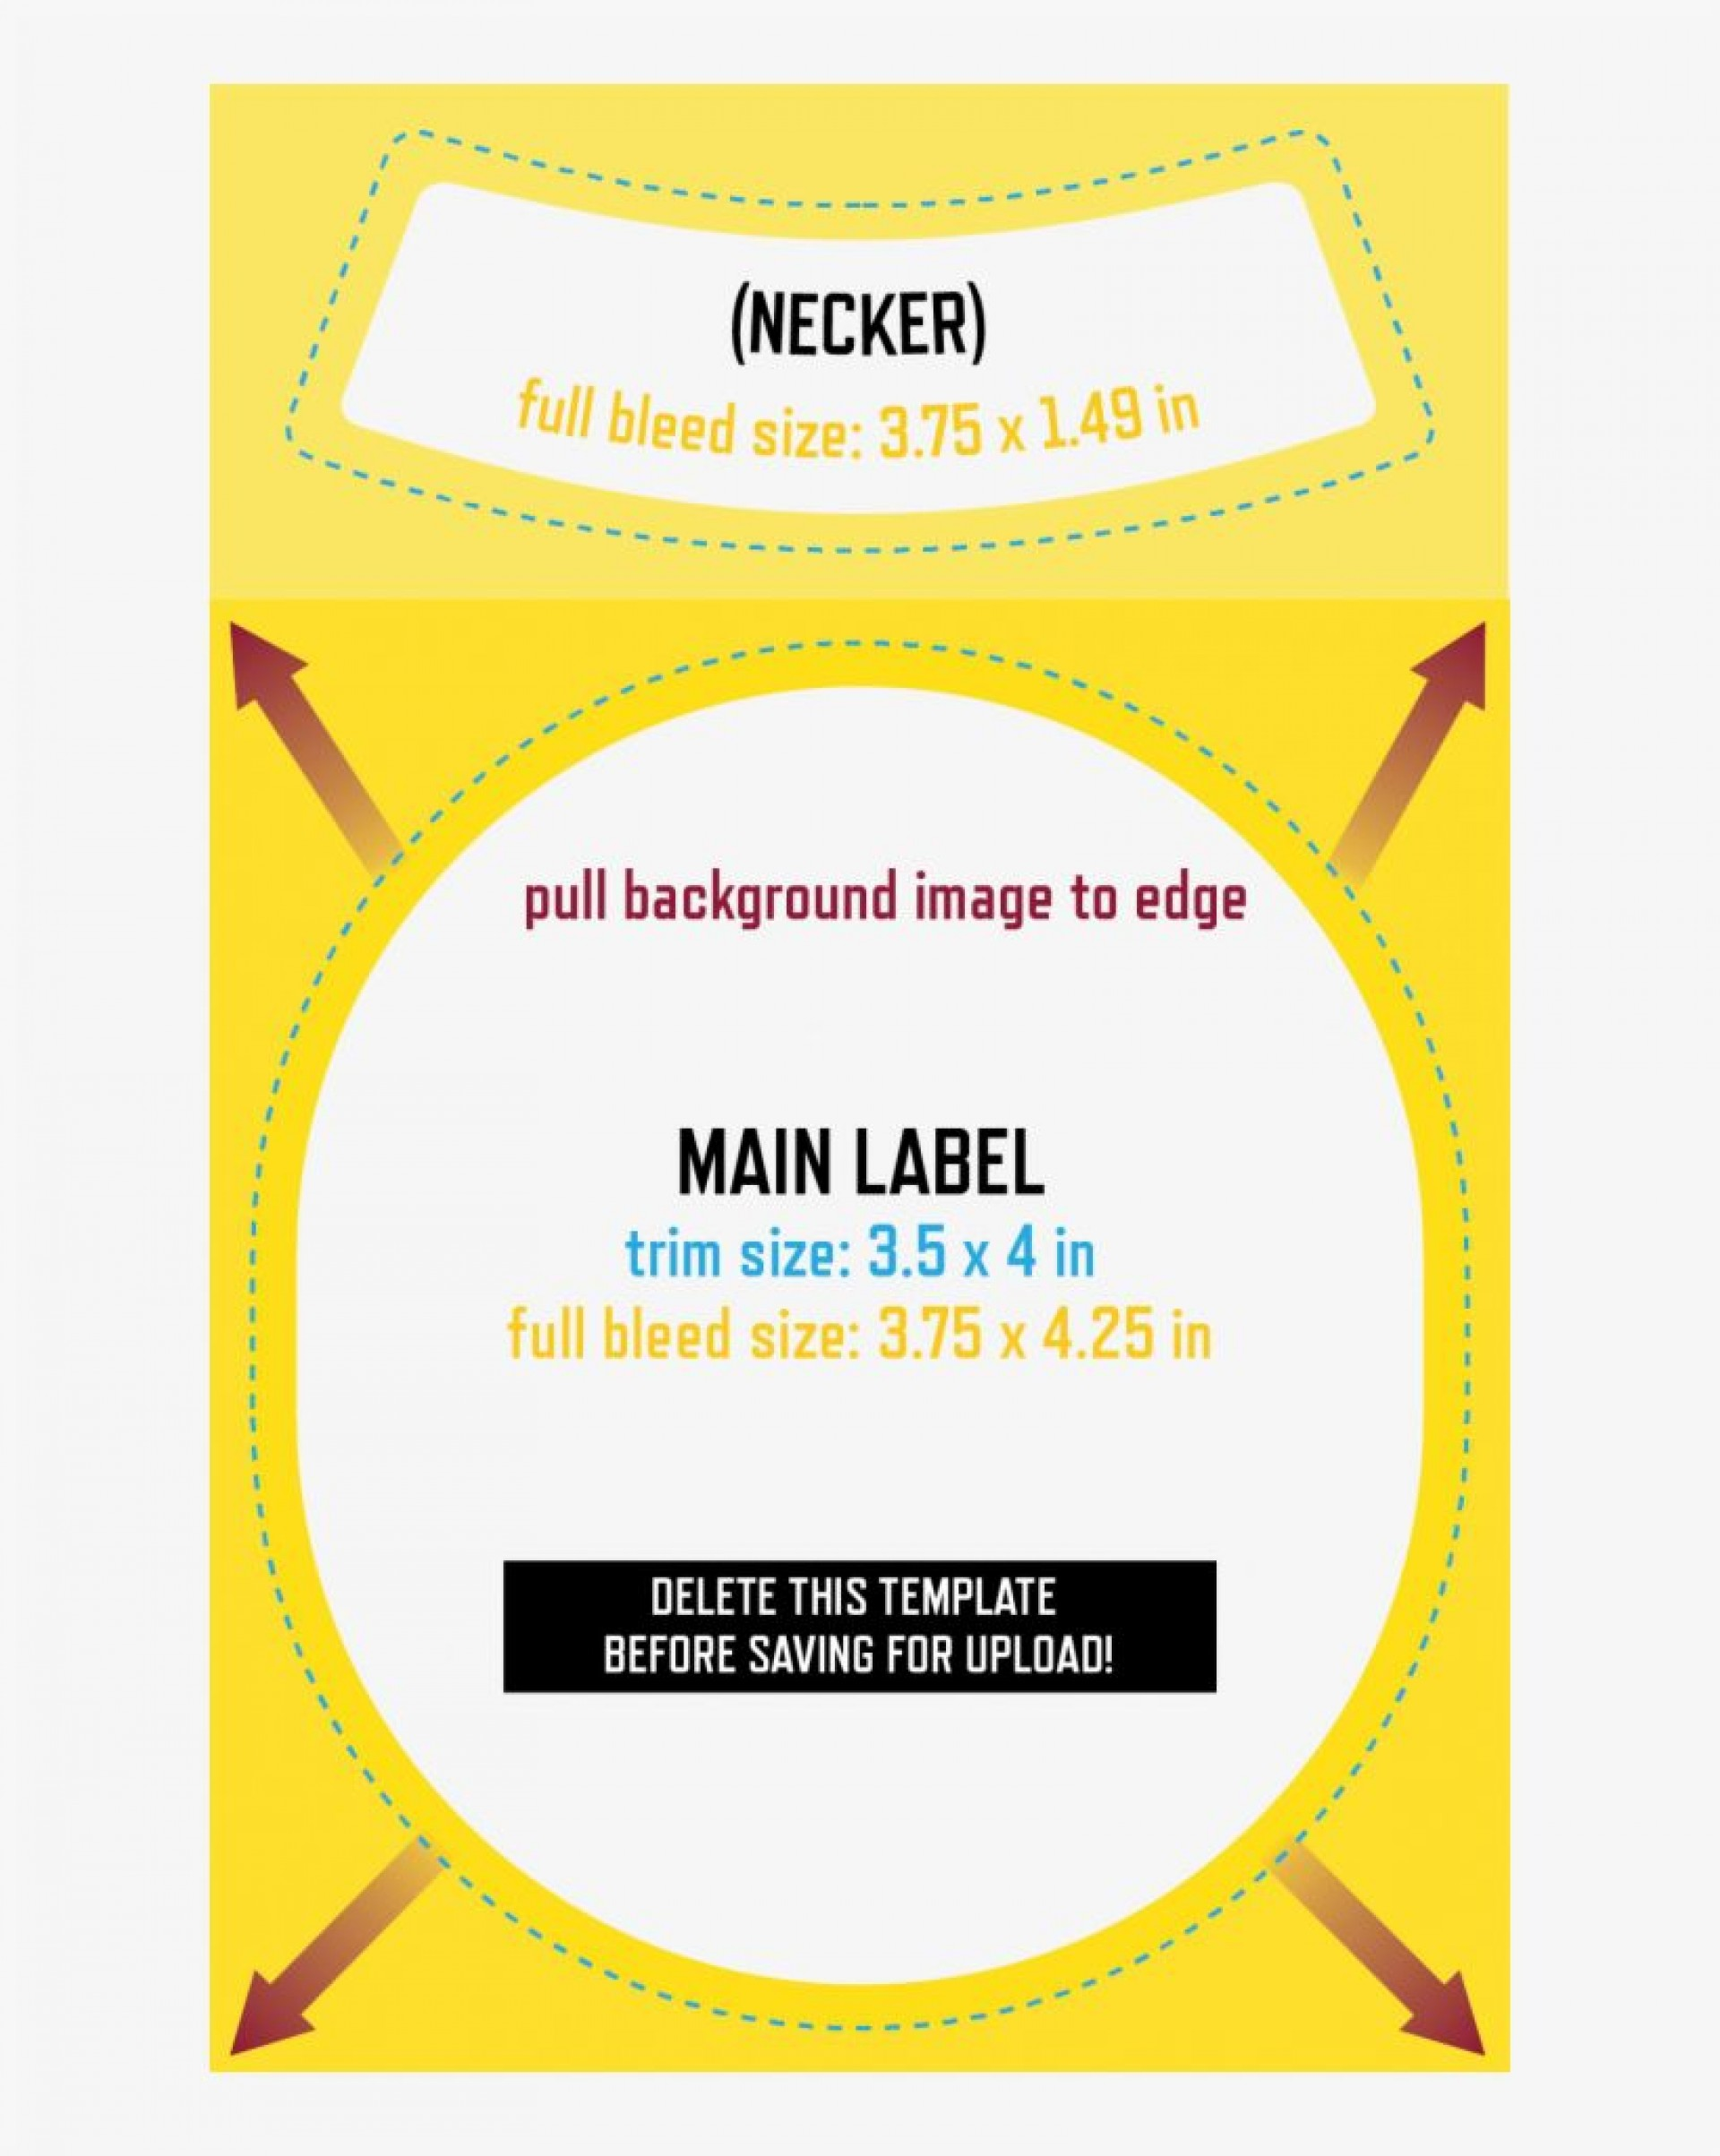 001 Staggering Beer Bottle Label Template High Def  Free Dimension Word1920